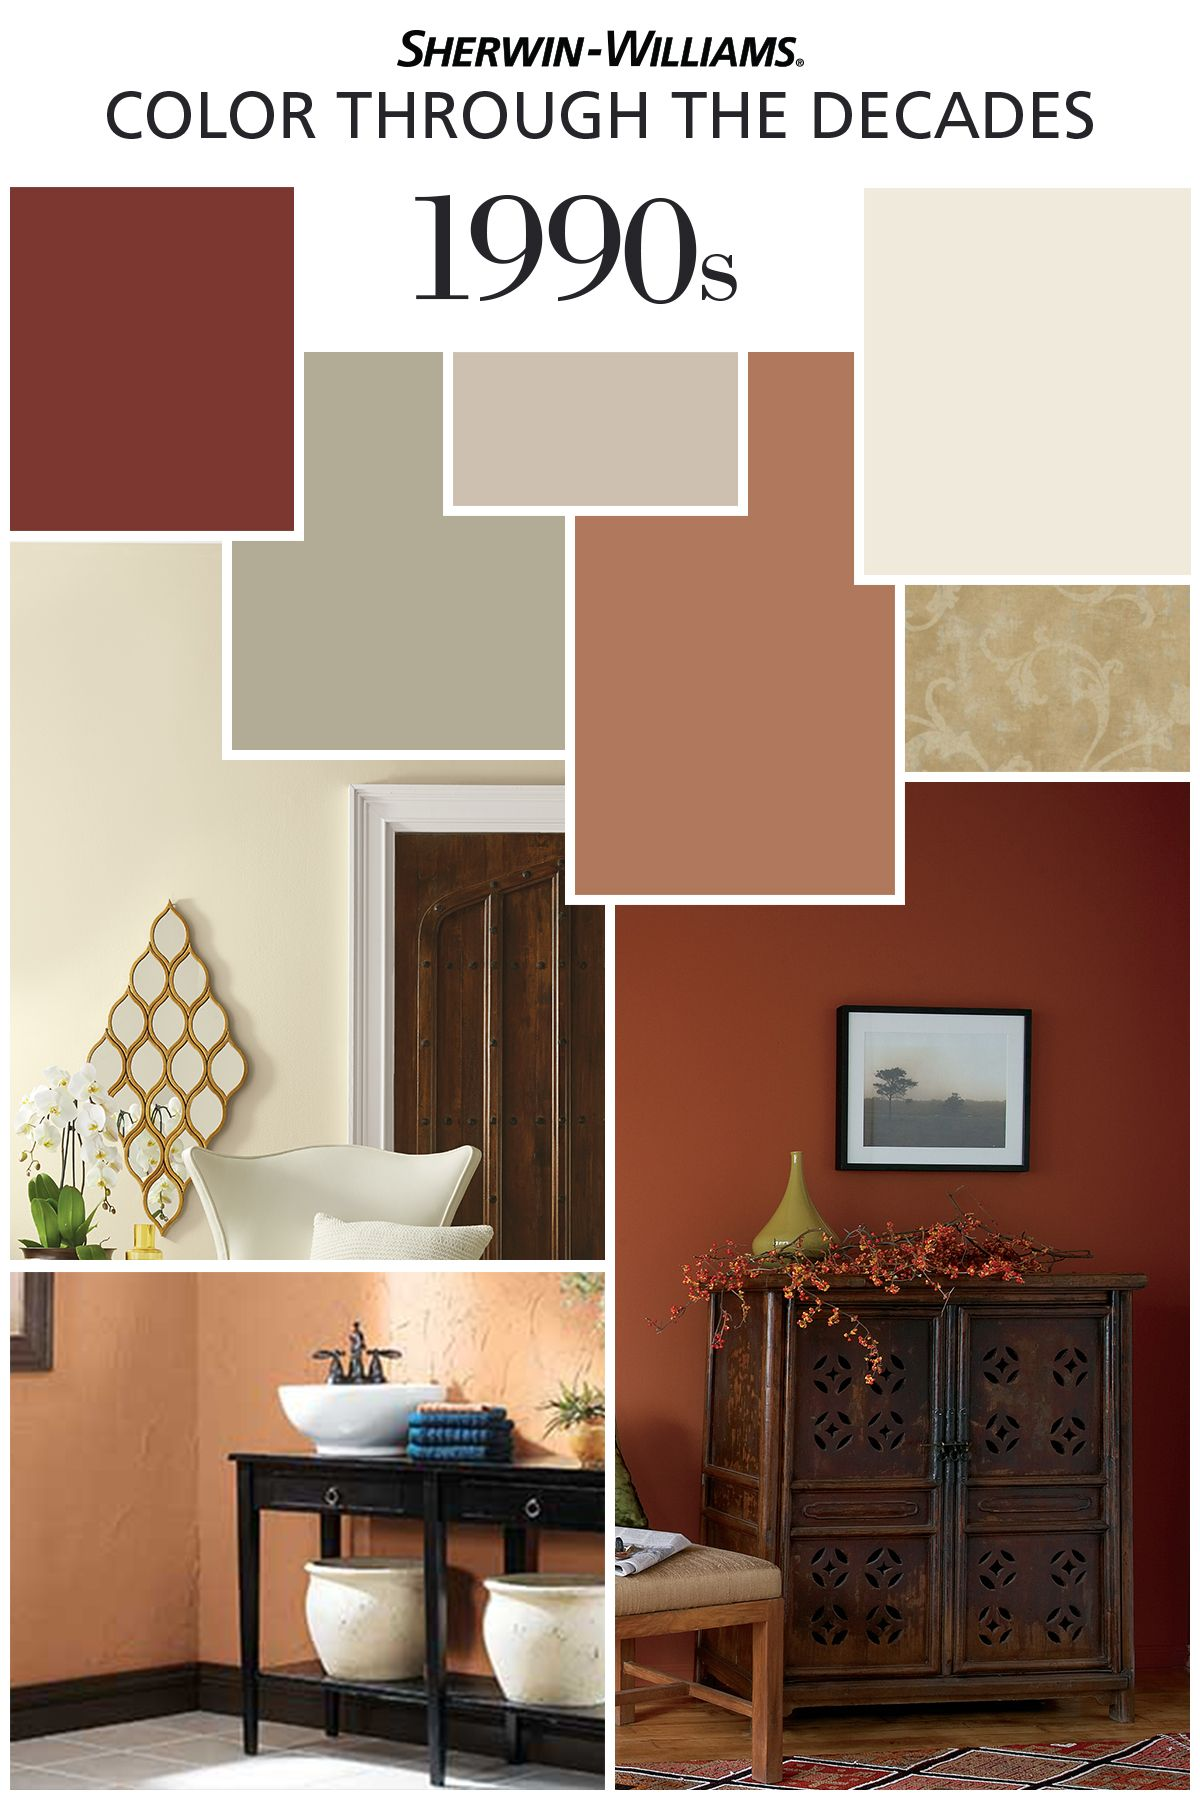 Color Through The Decades 1990s Sherwin Williams Interior Paint Schemes Interior Paint Colors Earth Tones Kitchen #sherwin #williams #paint #colors #living #room